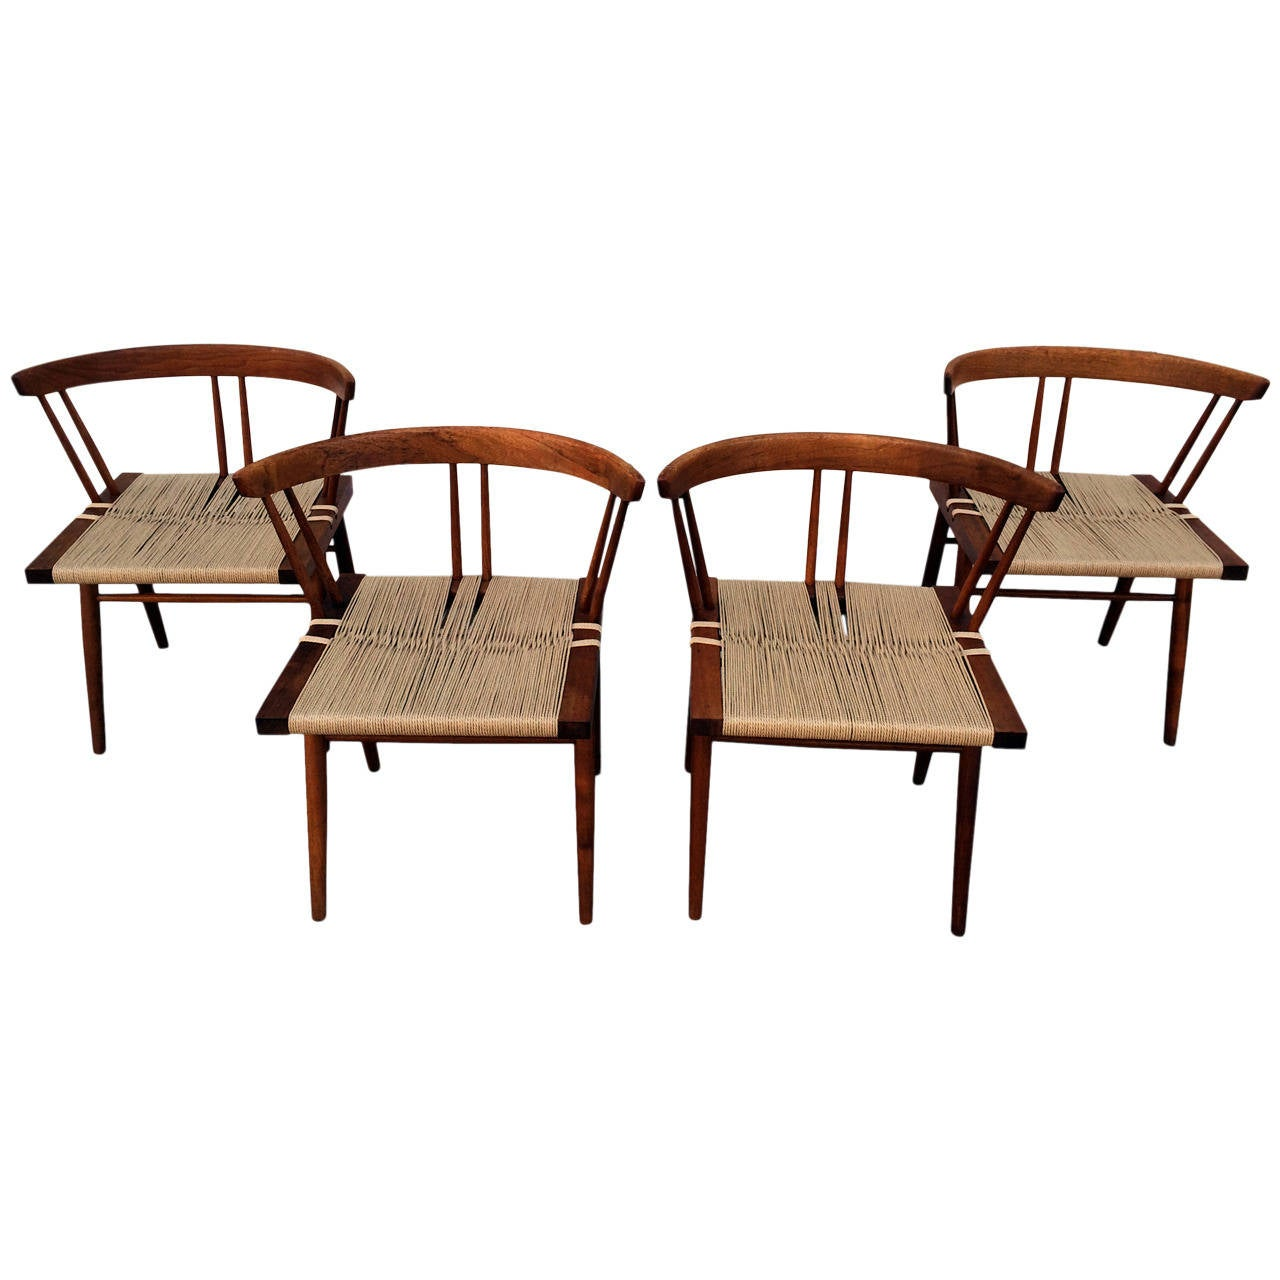 Set of four walnut and woven seat chairs by george nakashima for sale